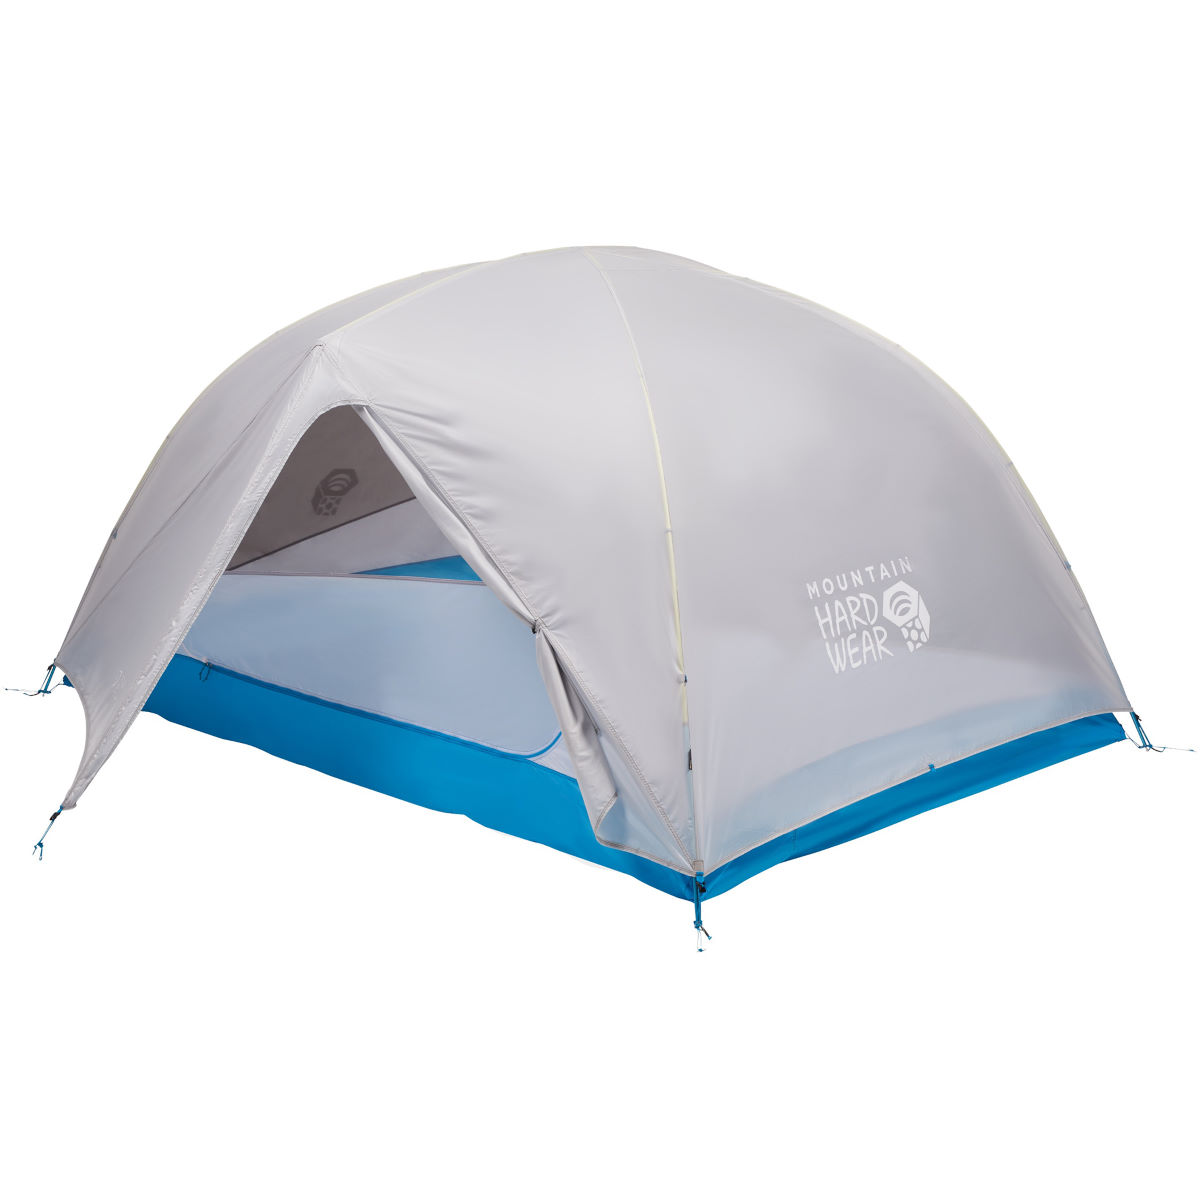 Mountain Hardwear Mountain Hardwear Aspect™ 3 Tent   Tents